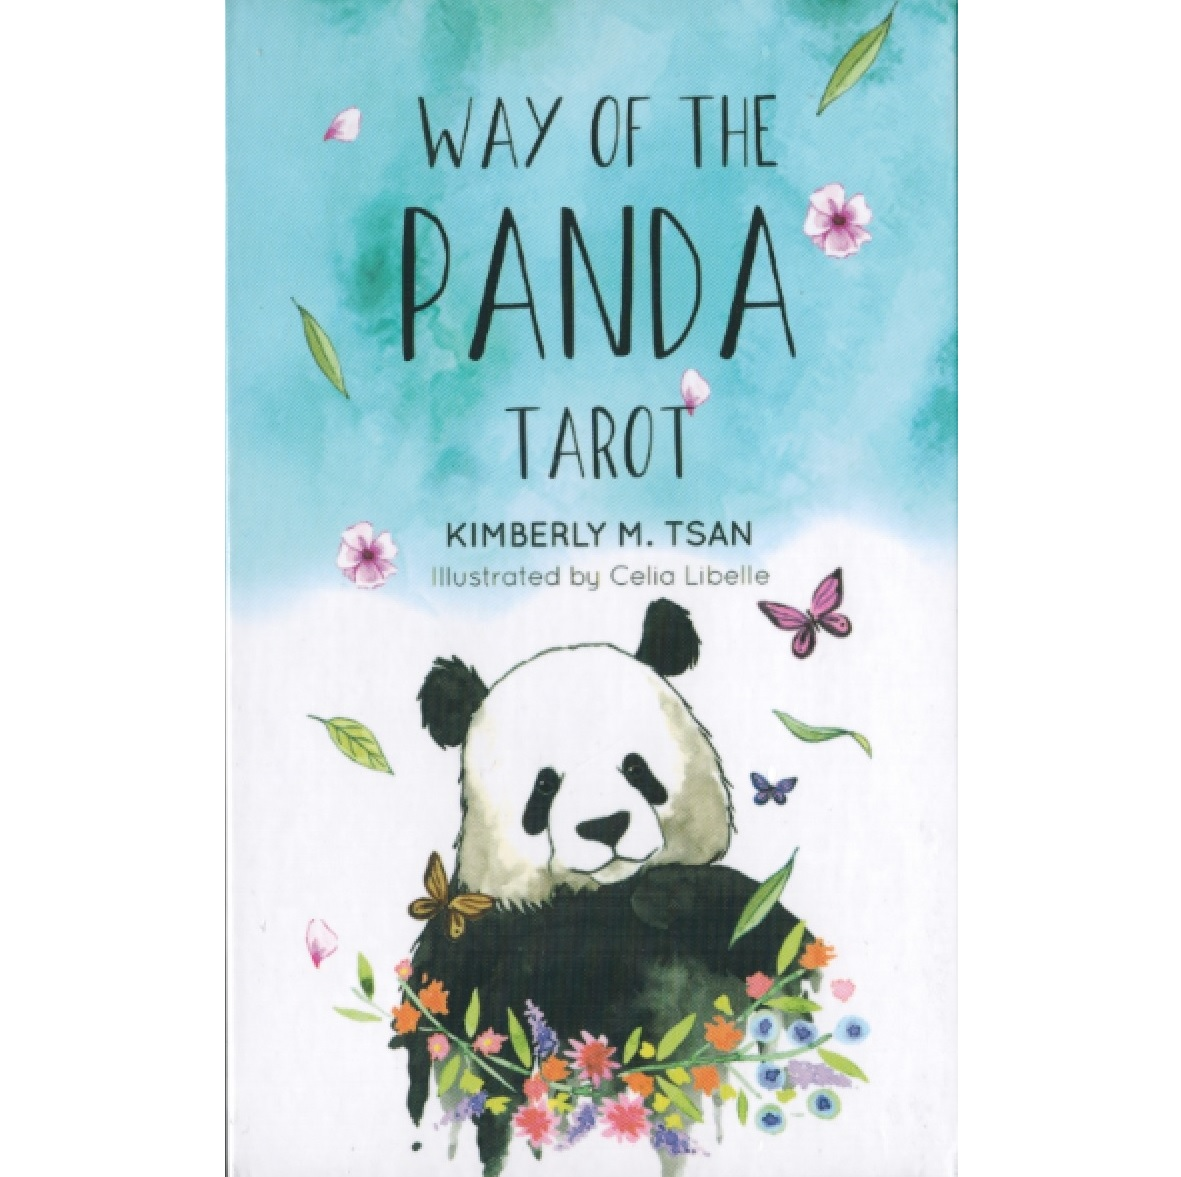 Way of the Panda Tarot 19